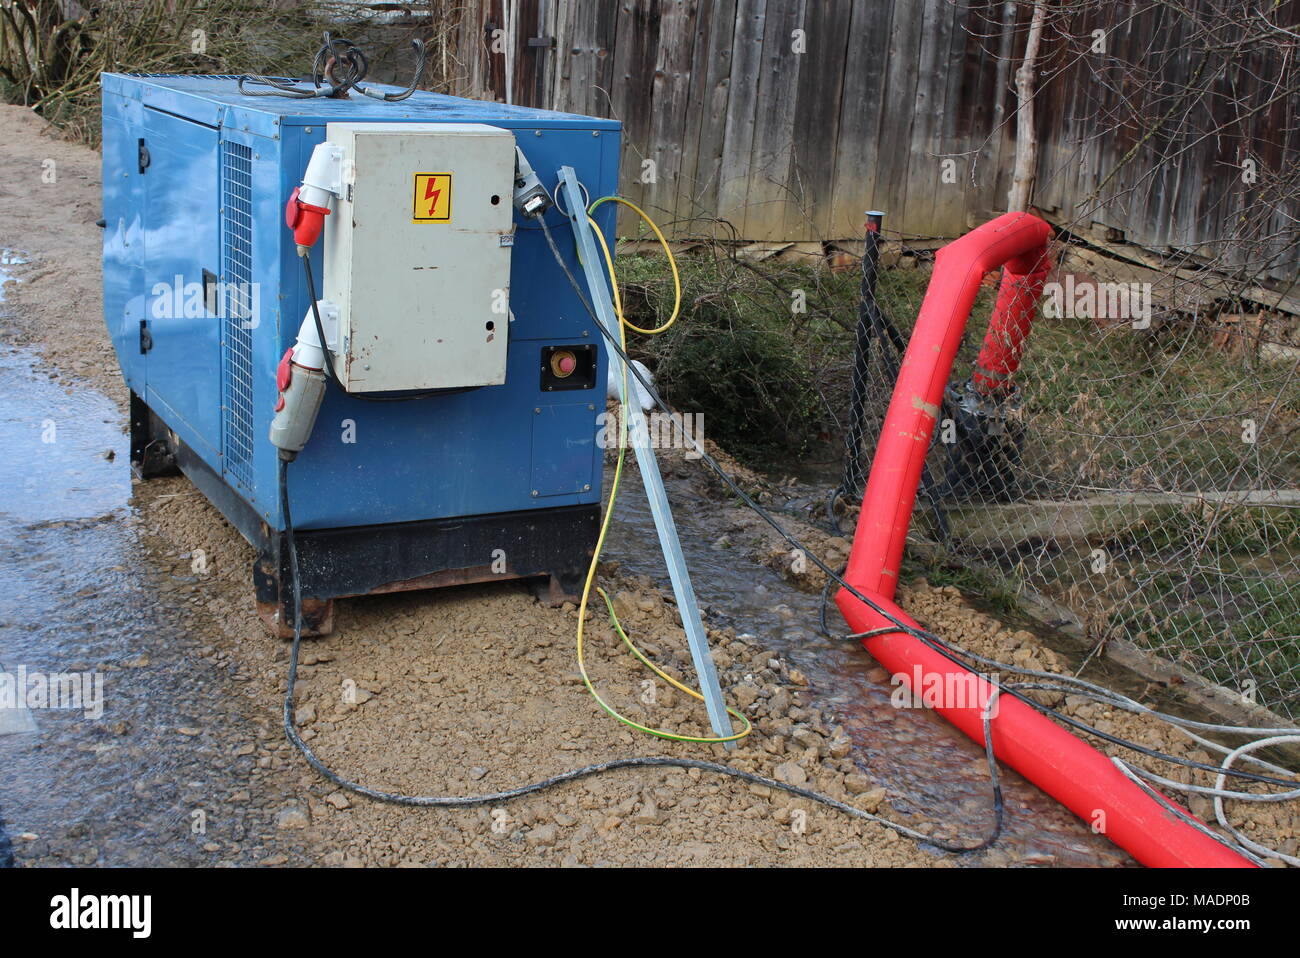 electrical power generator portable enclosed industrial power generator providing electrical to large water pumps with strong red hose pumping over wire fence during flood